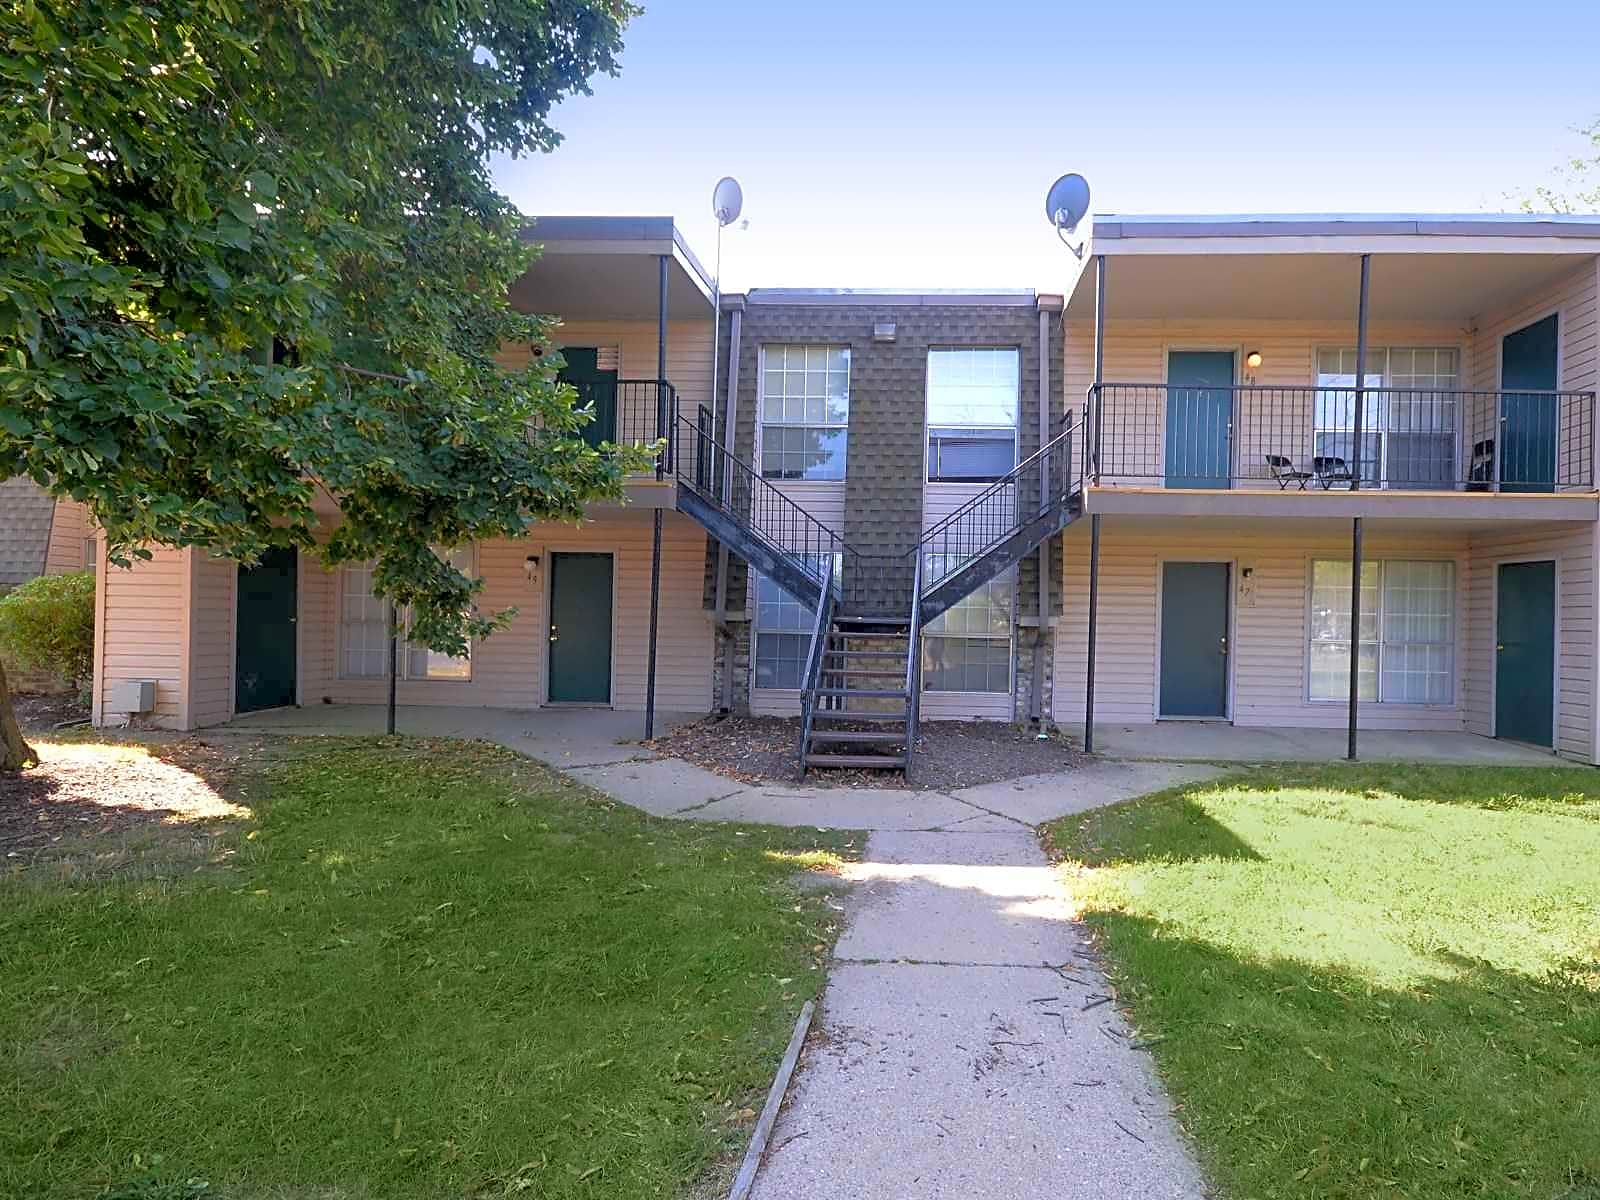 Photo: Indianapolis Apartment for Rent - $495.00 / month; 1 Bd & 1 Ba